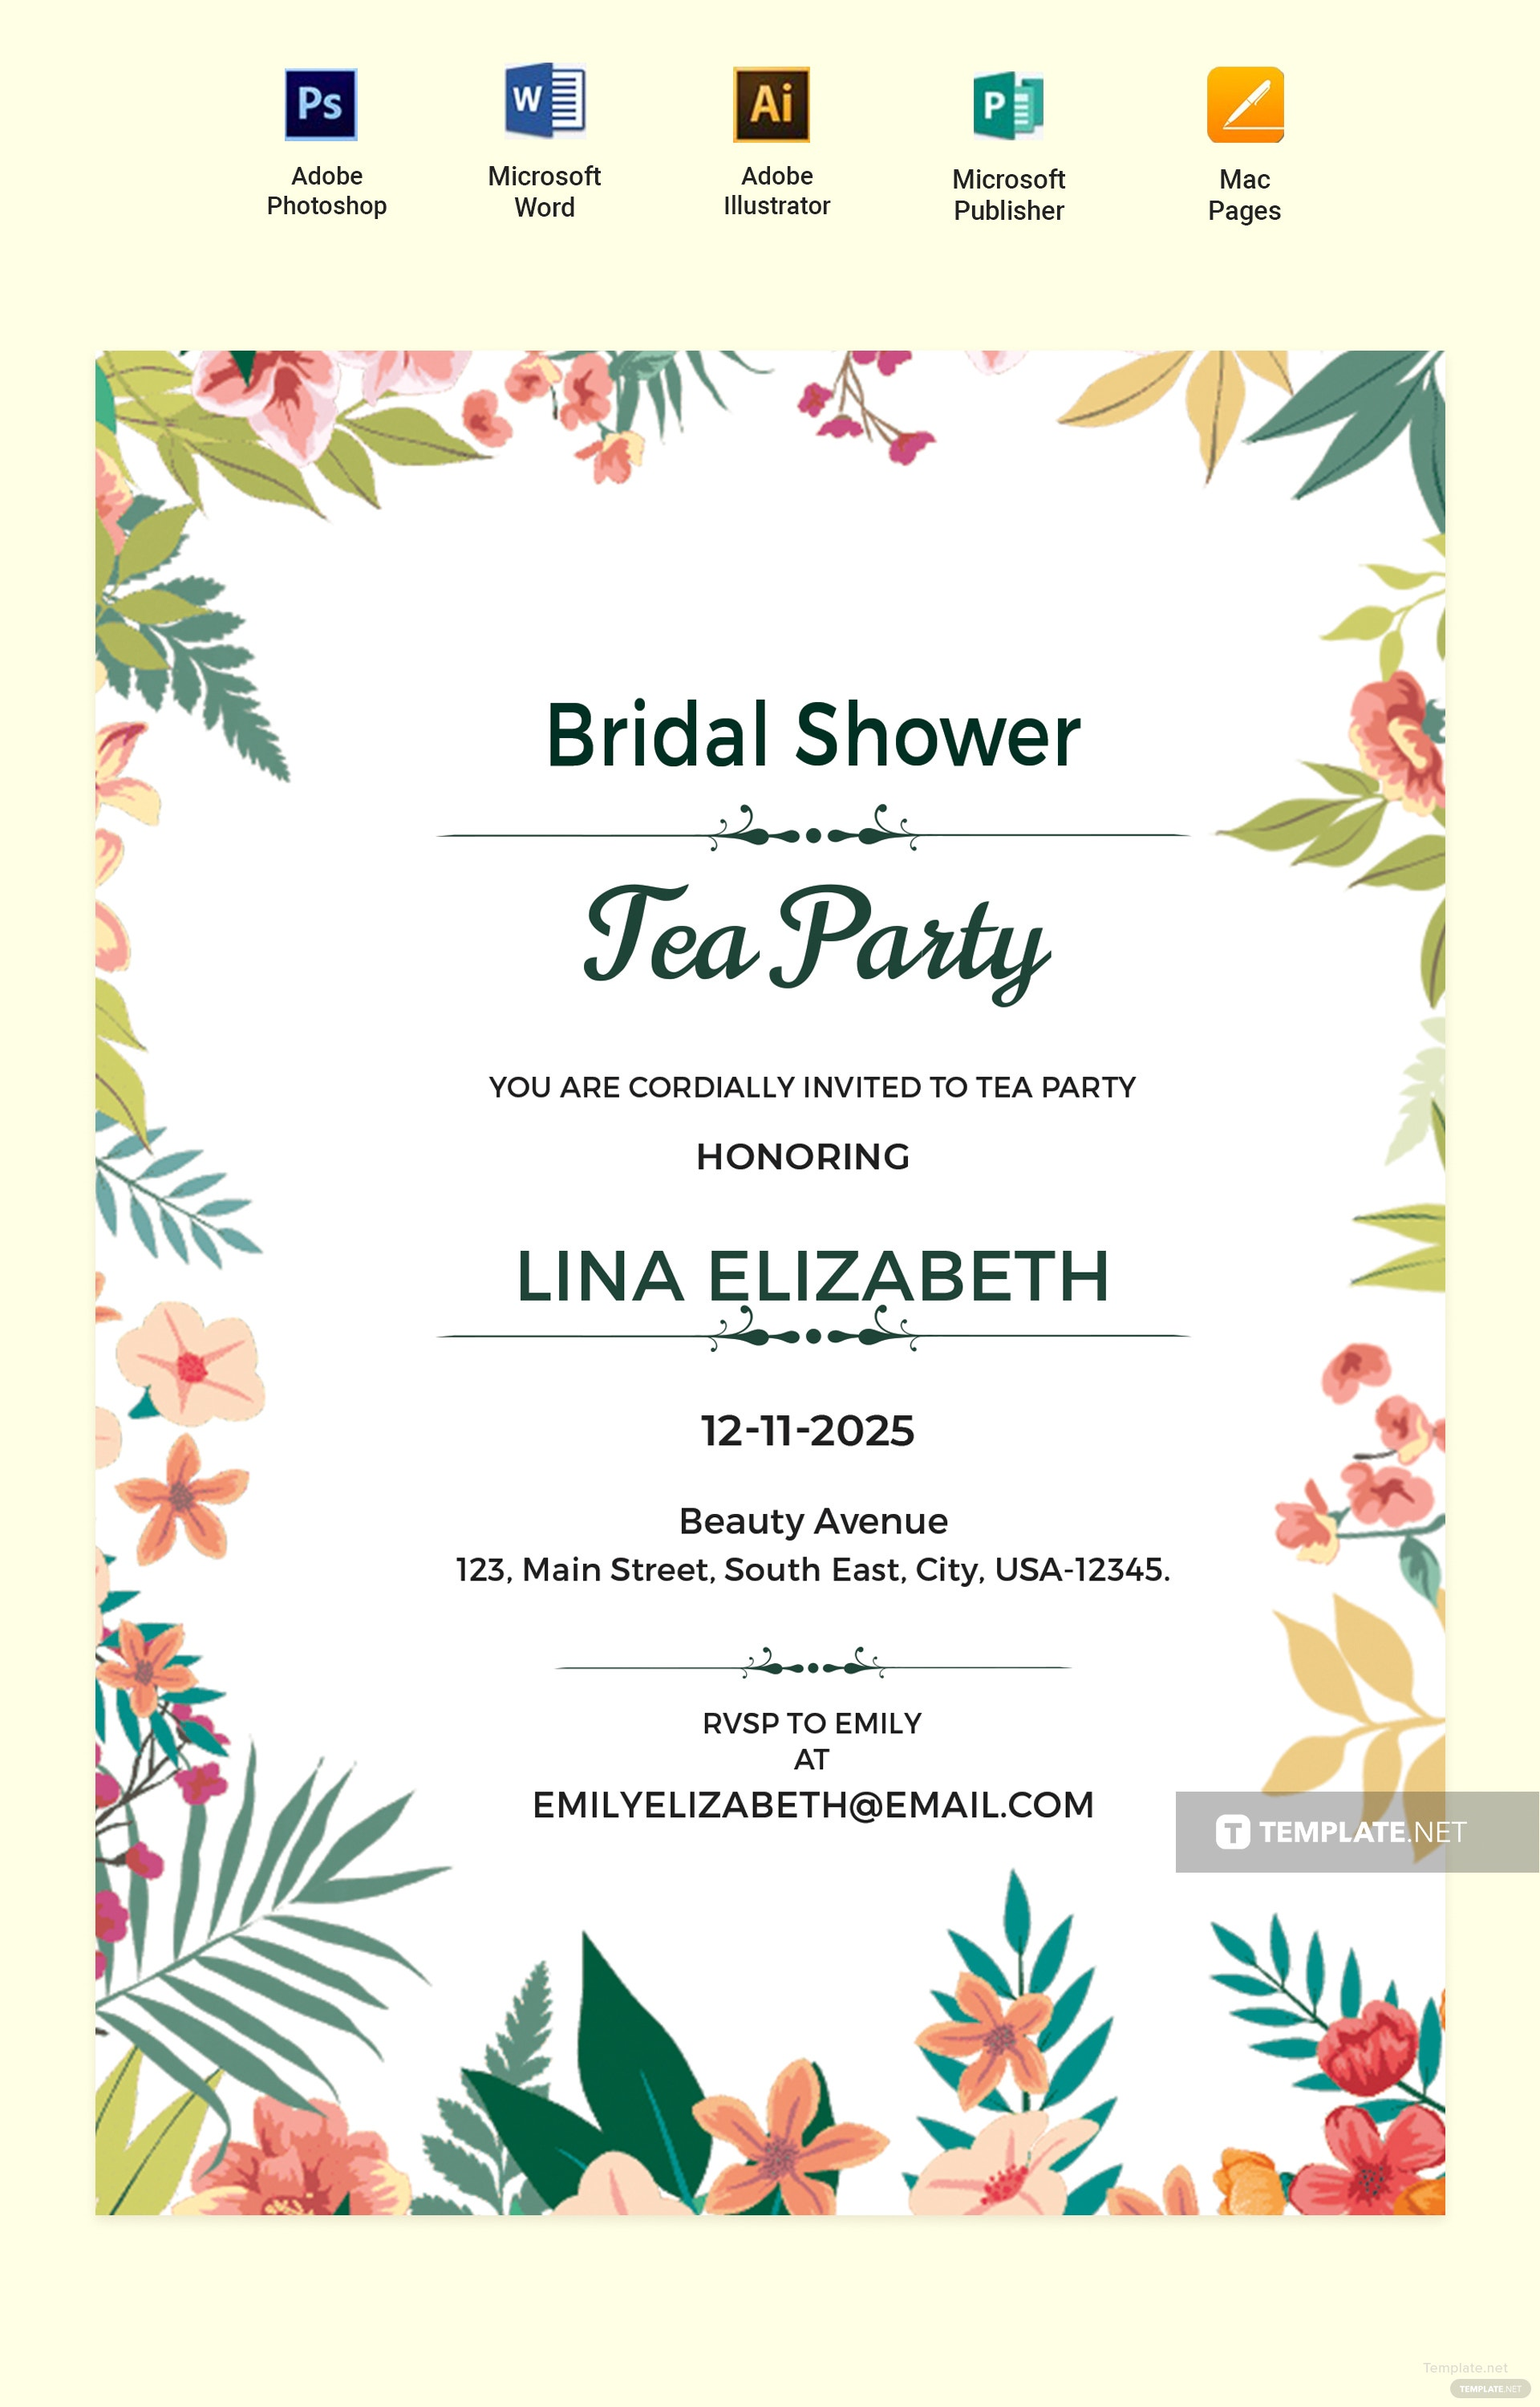 Bridal Shower Tea Party Invites BI17 Advancedmassagebysara